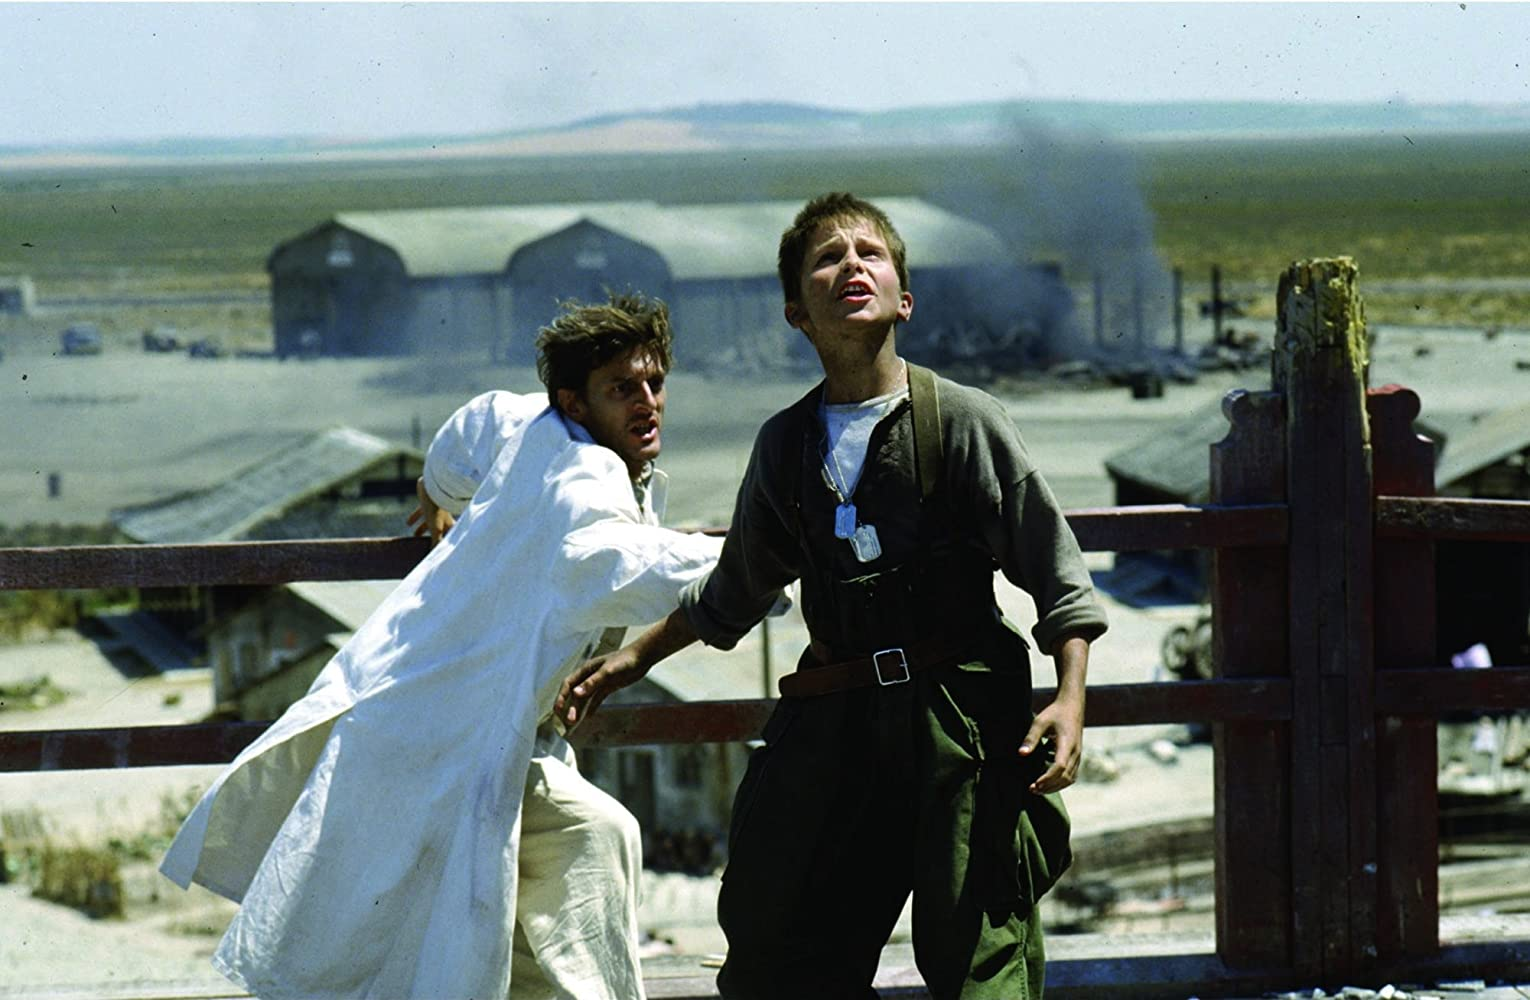 Christian Bale and Nigel Havers in Empire of the Sun (1987)